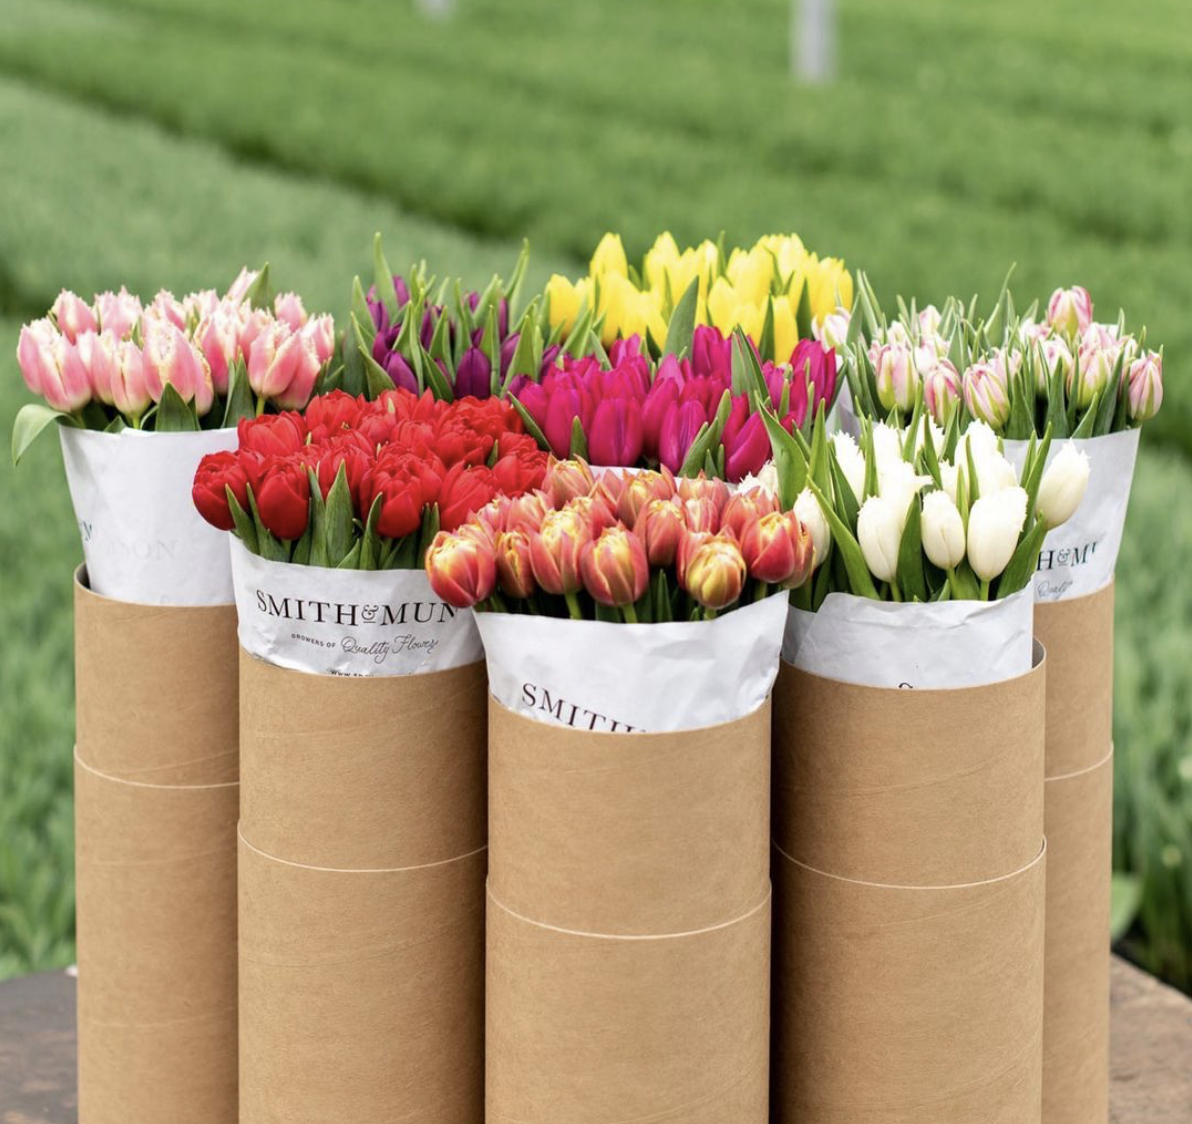 British grown tulips by post from Smith & Munson, from £20 a tube